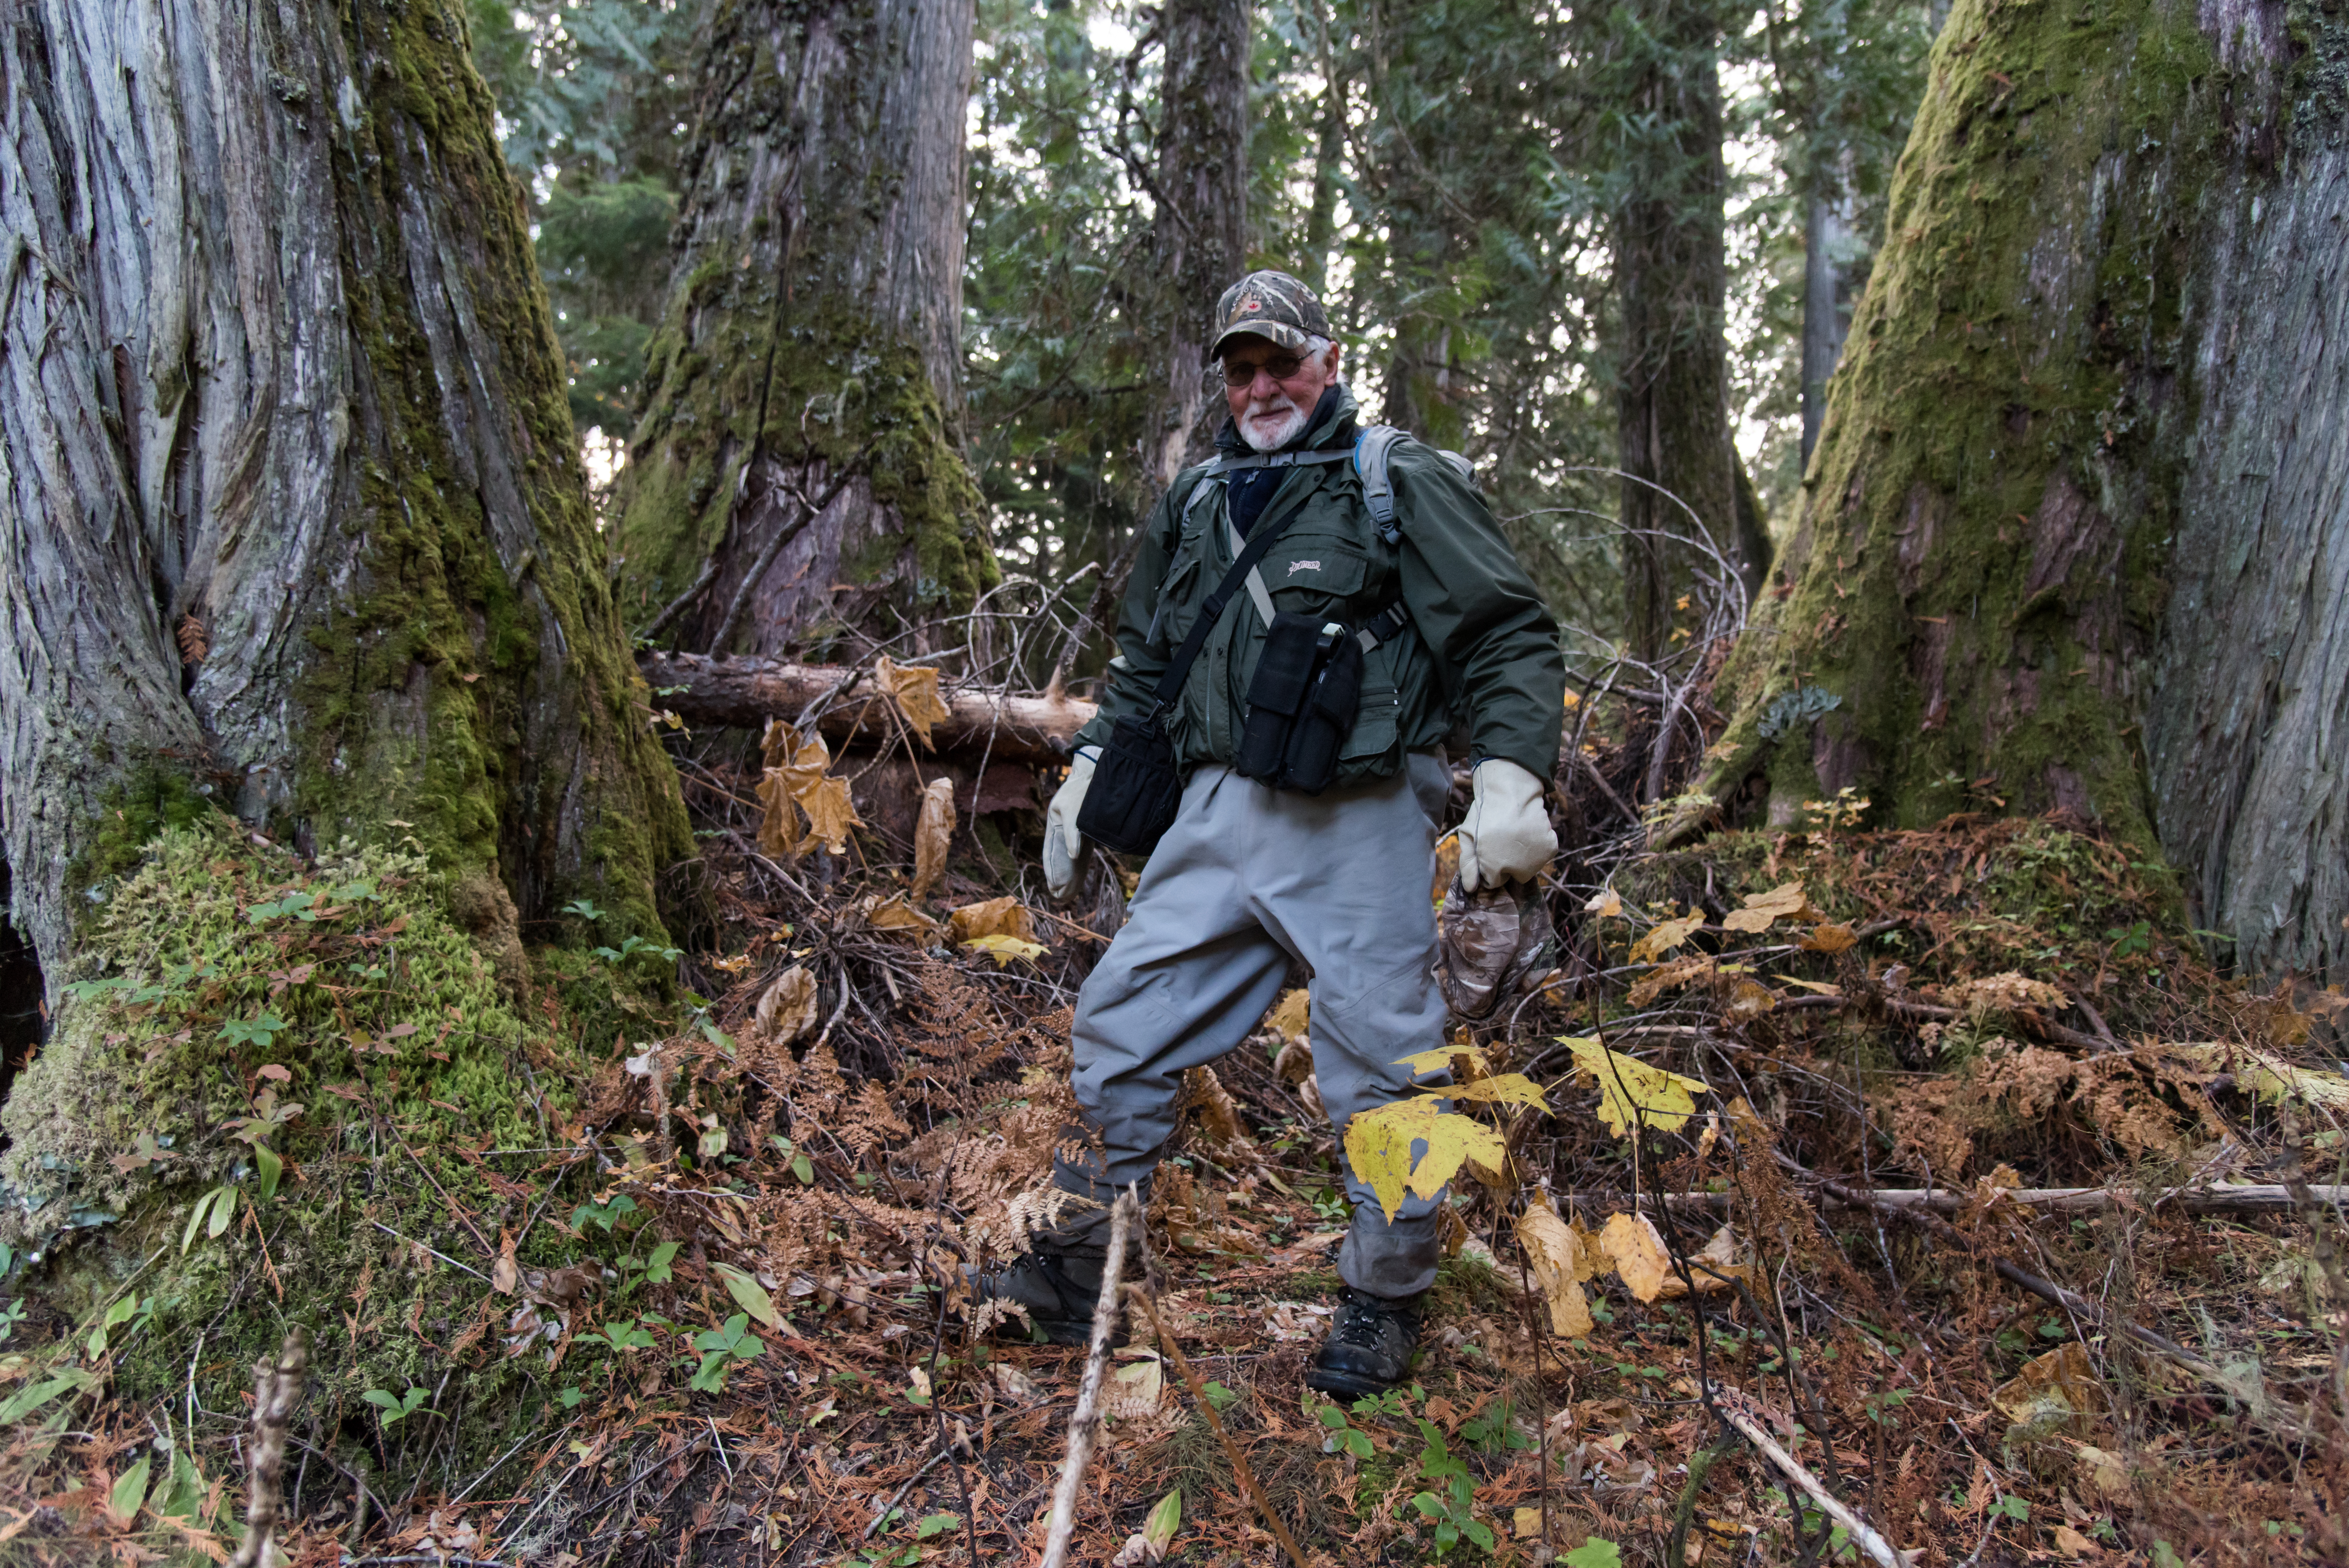 Gary Zorn, The Bear Whisperer, stands in an ancient cedar forest (Sarah Marshall/PA)